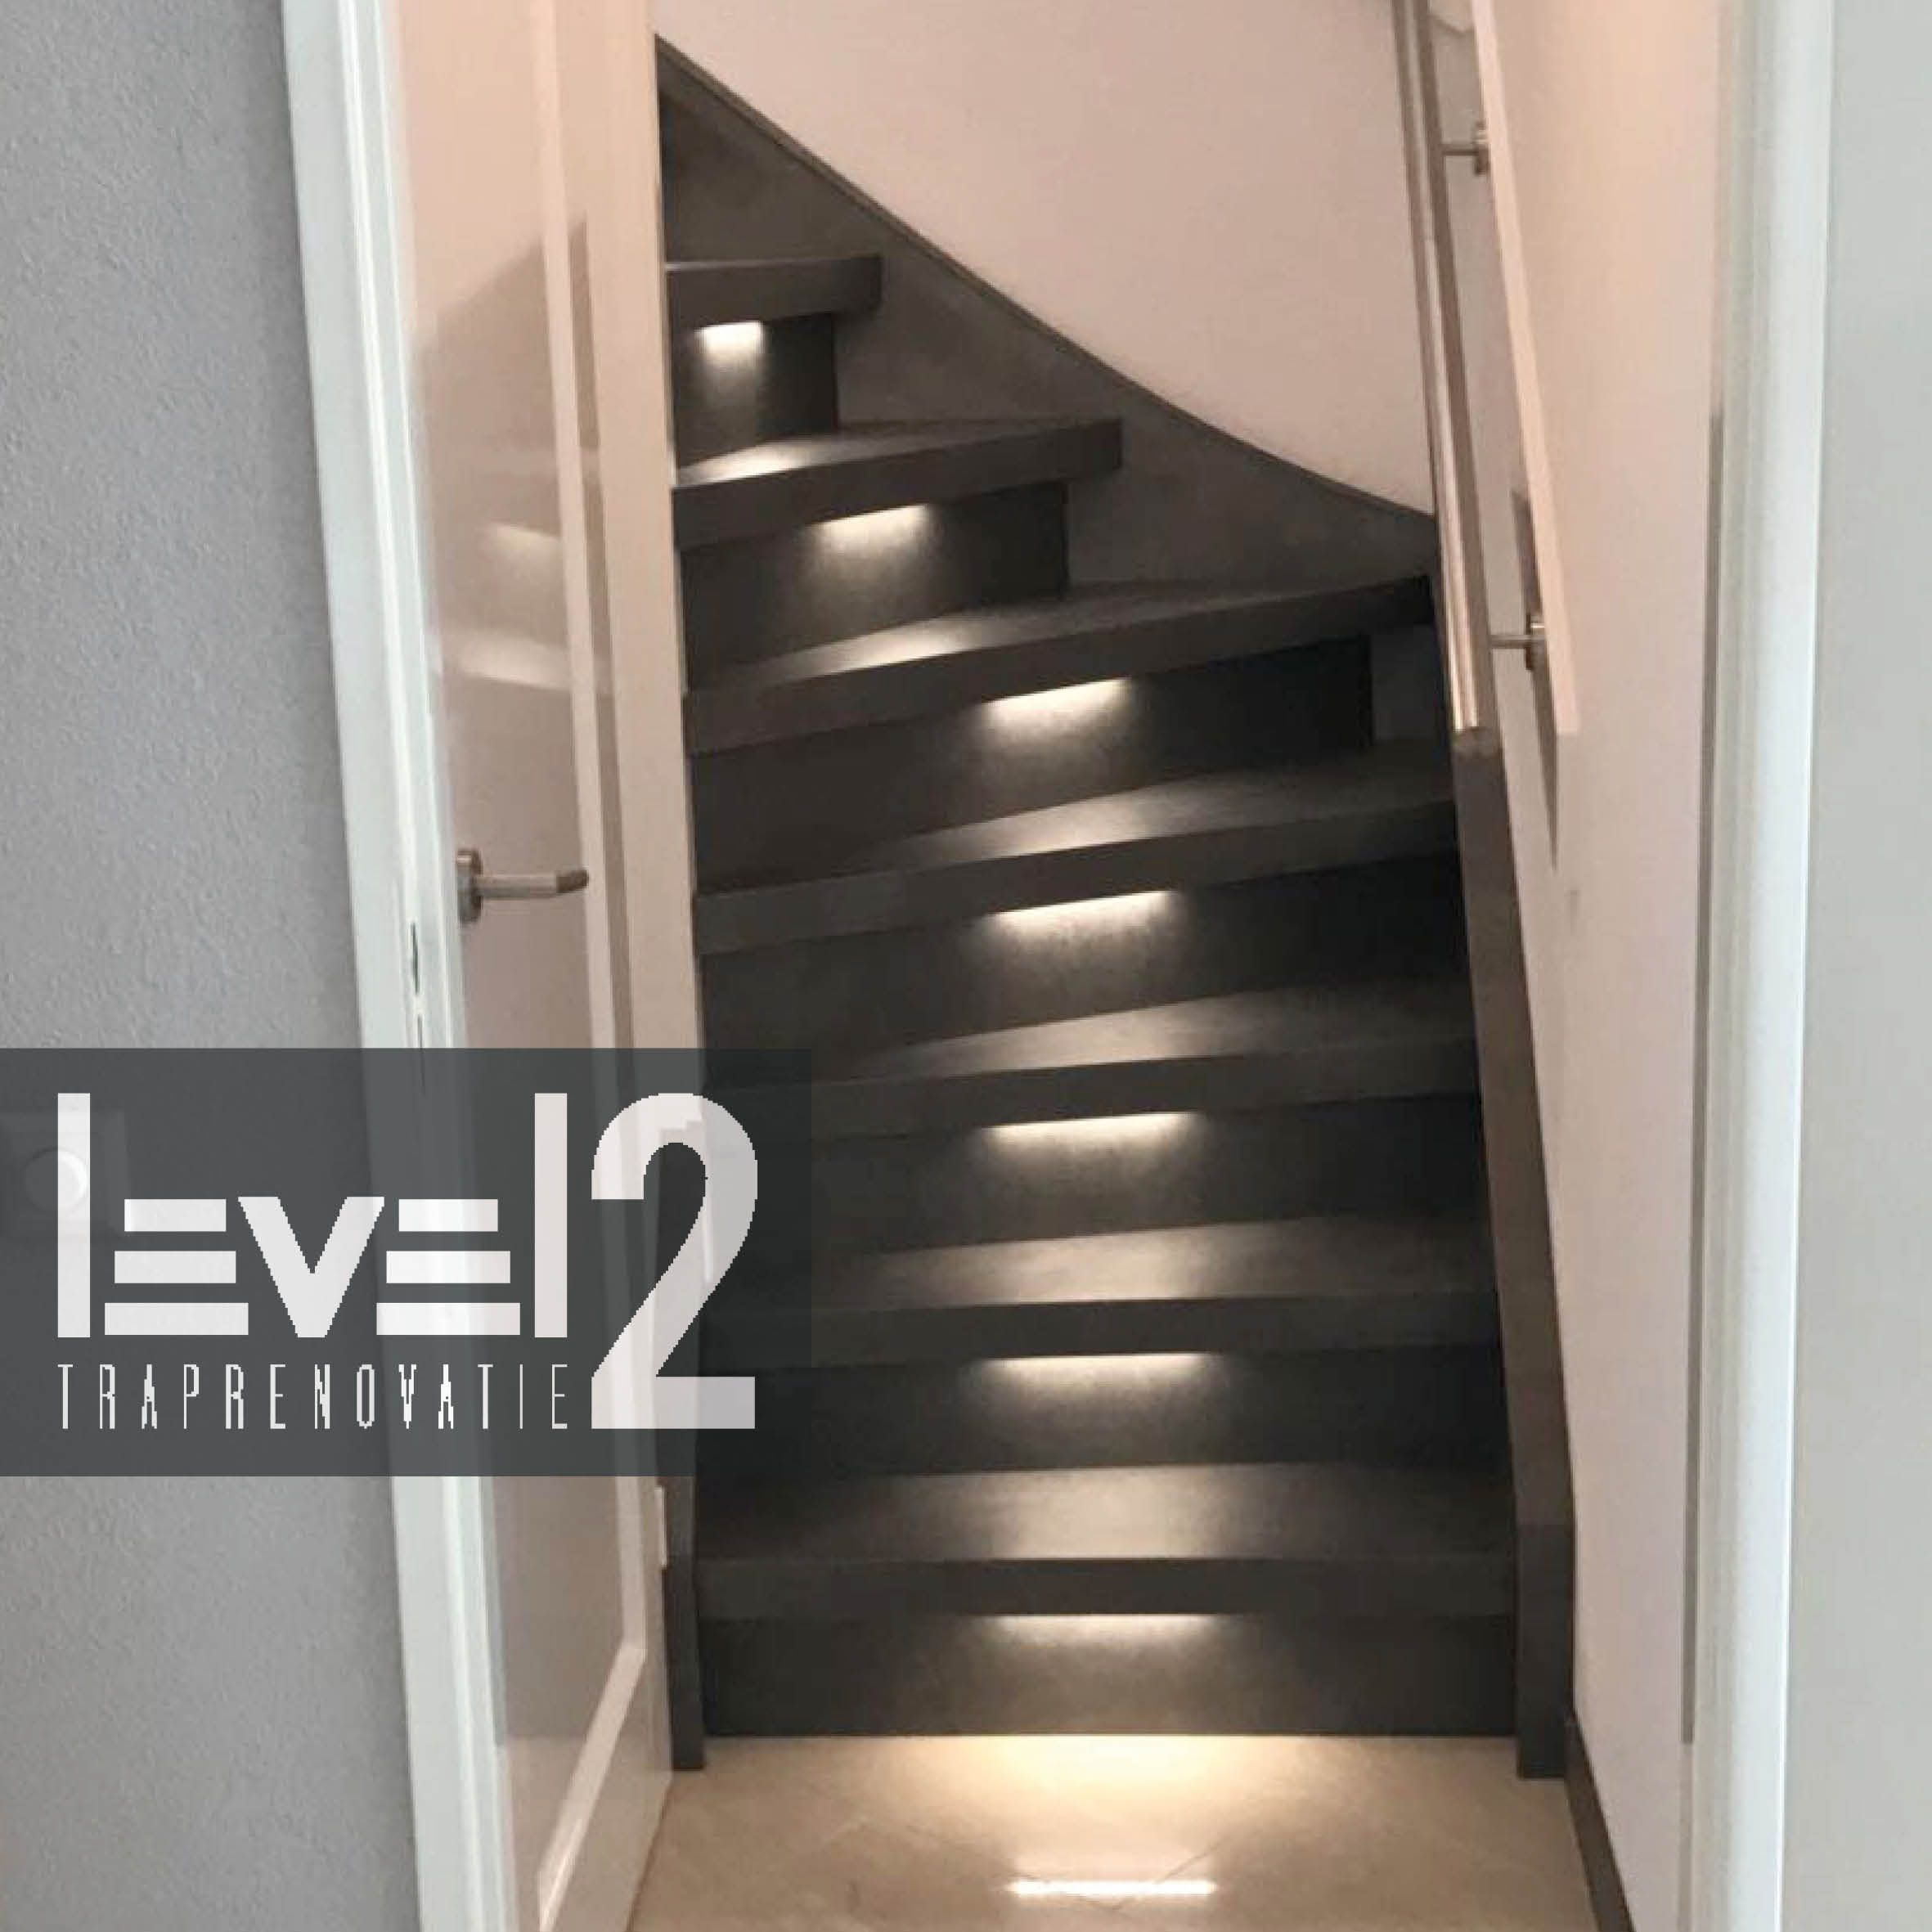 Trap Led Verlichting Ikea #level2traprenovatie #trapbekleden #trapbekleding #